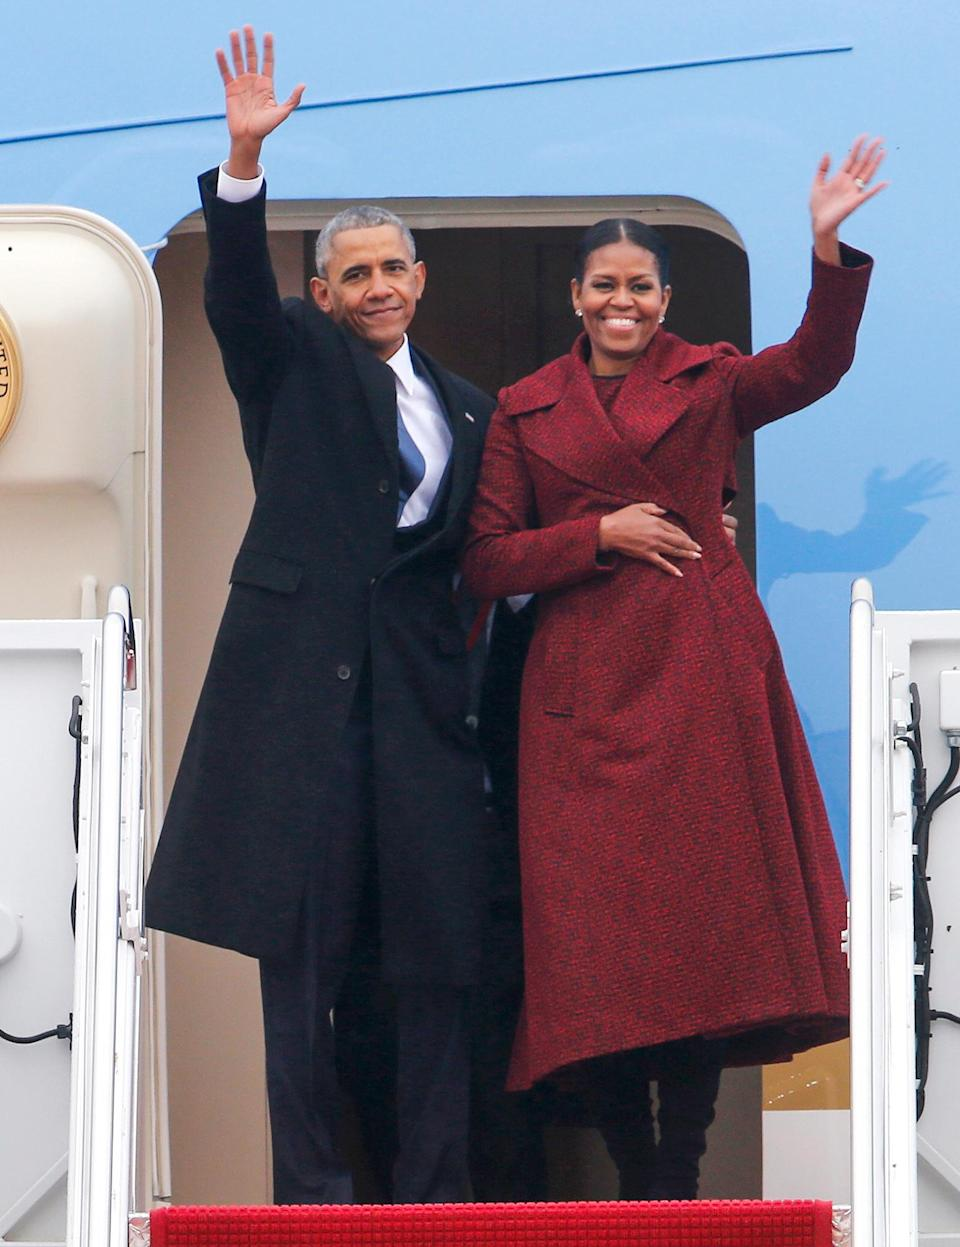 """<p>""""Michelle never asked to be first lady,"""" Barack told <em><a href=""""https://www.vogue.com/article/michelle-obama-december-cover-interview-first-lady-white-house-departure"""" rel=""""nofollow noopener"""" target=""""_blank"""" data-ylk=""""slk:Vogue"""" class=""""link rapid-noclick-resp"""">Vogue</a> </em>in 2016. """"Like a lot of political spouses, the role was thrust upon her. But I always knew she'd be incredible at it, and put her own unique stamp on the job. That's because who you see is who she is — the brilliant, funny, generous woman who, for whatever reason, agreed to marry me. I think people gravitate to her because they see themselves in her — a dedicated mom, a good friend, and someone who's not afraid to poke a little fun at herself from time to time.""""</p>"""